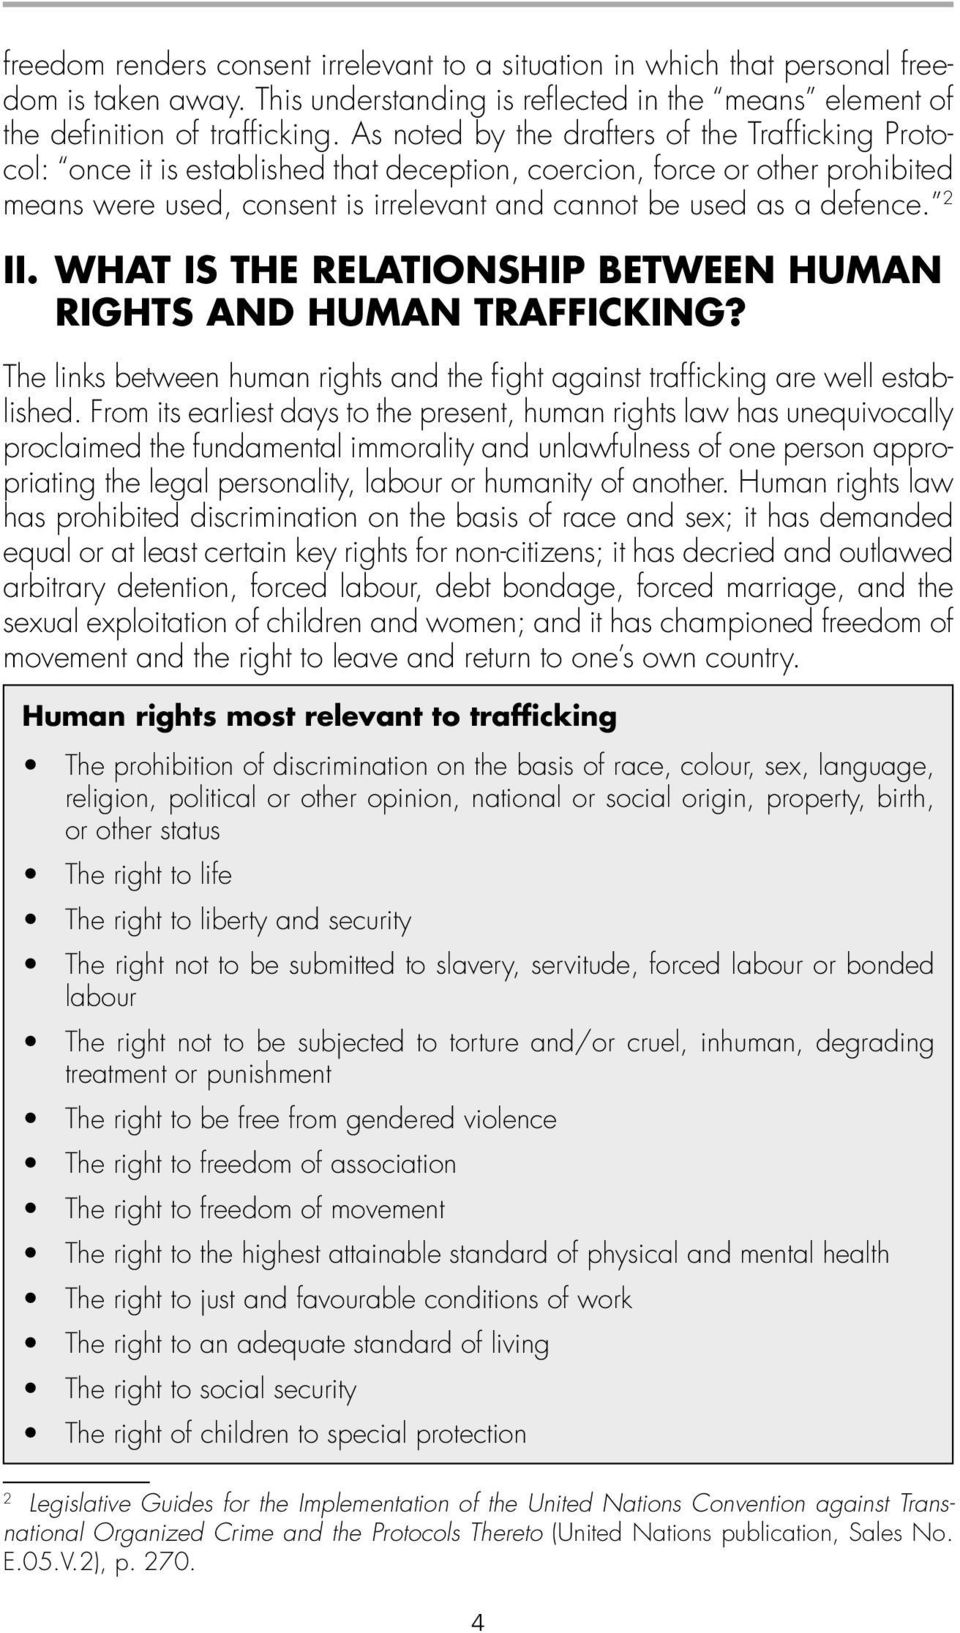 2 II. WHAT IS THE RELATIONSHIP BETWEEN HUMAN RIGHTS AND HUMAN TRAFFICKING? The links between human rights and the fight against trafficking are well established.